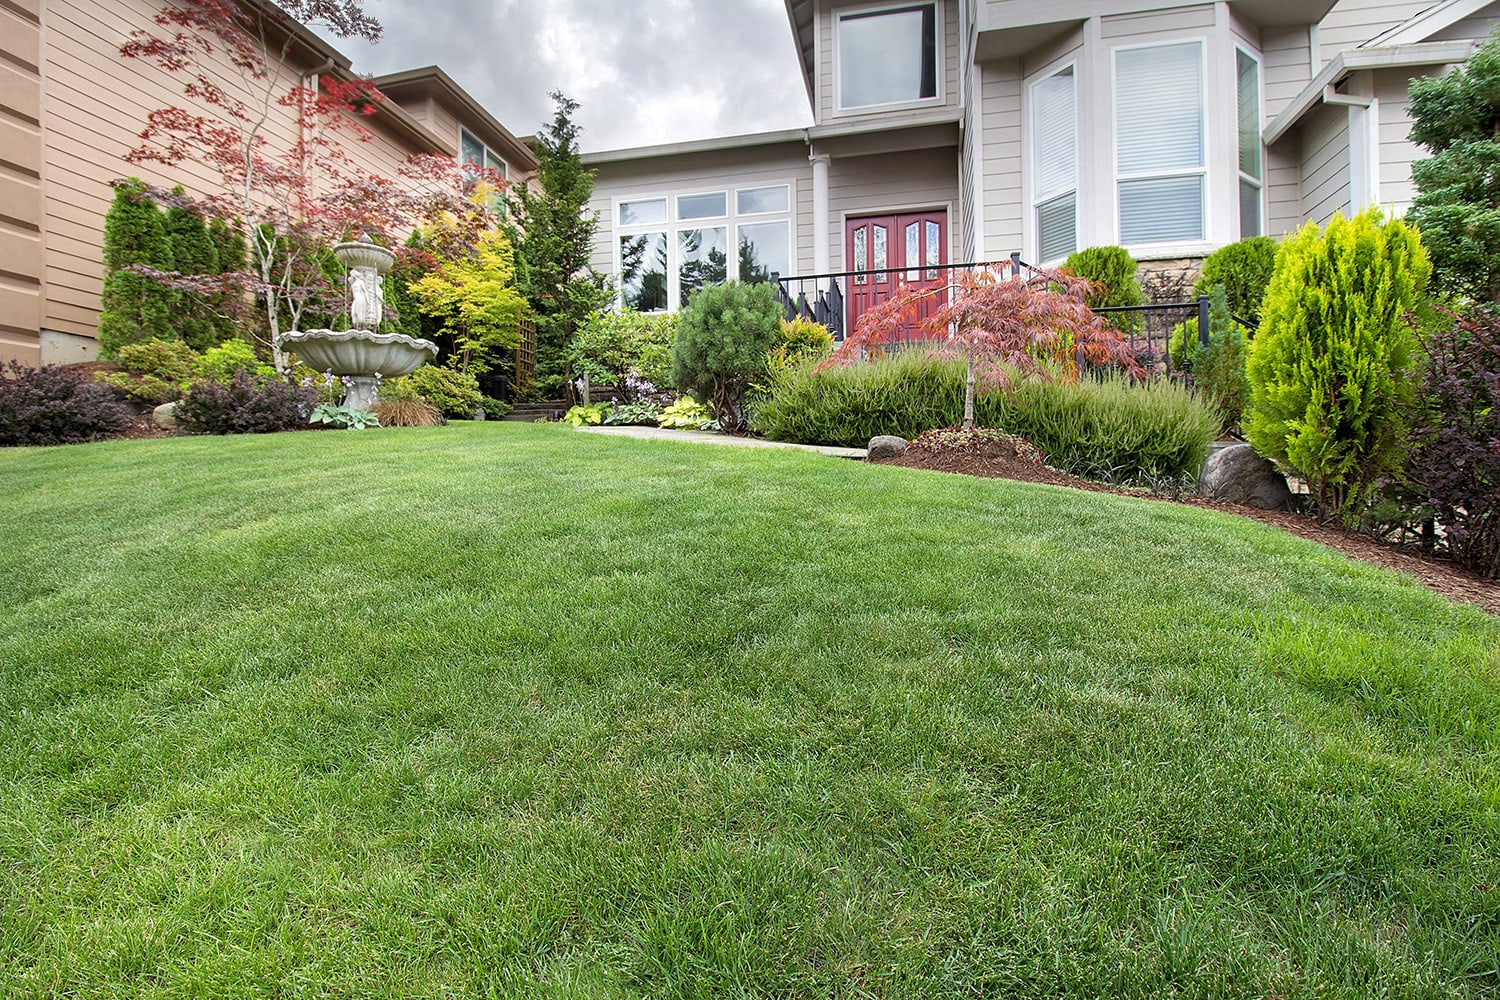 <p>Manicured front yard</p>